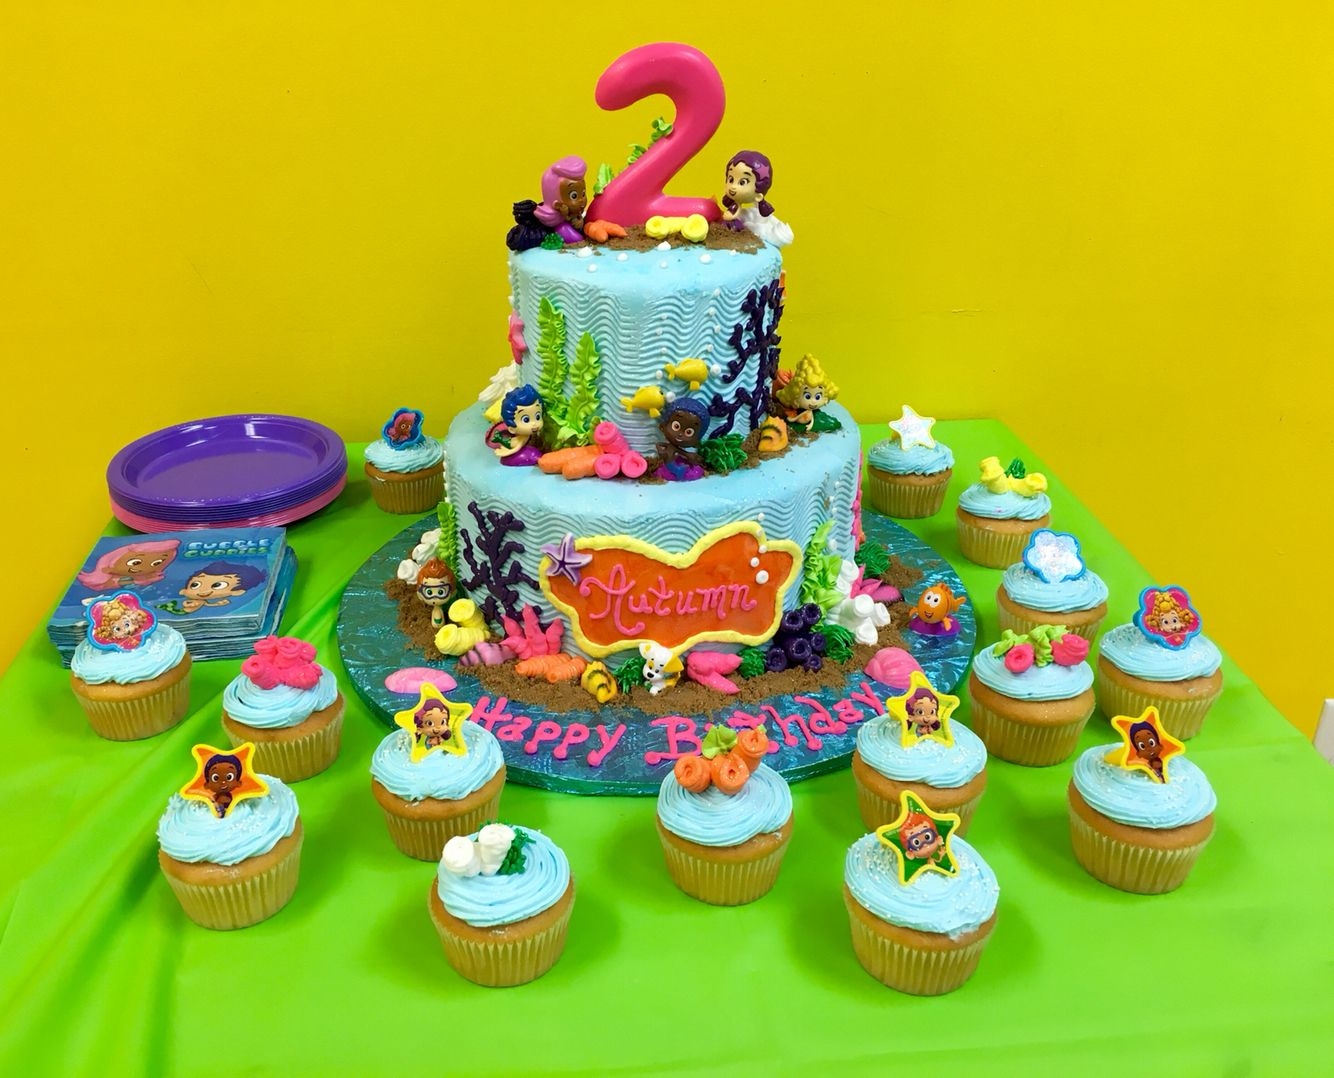 My daughters 2nd birthday Bubble Guppies cake turned out awesome!